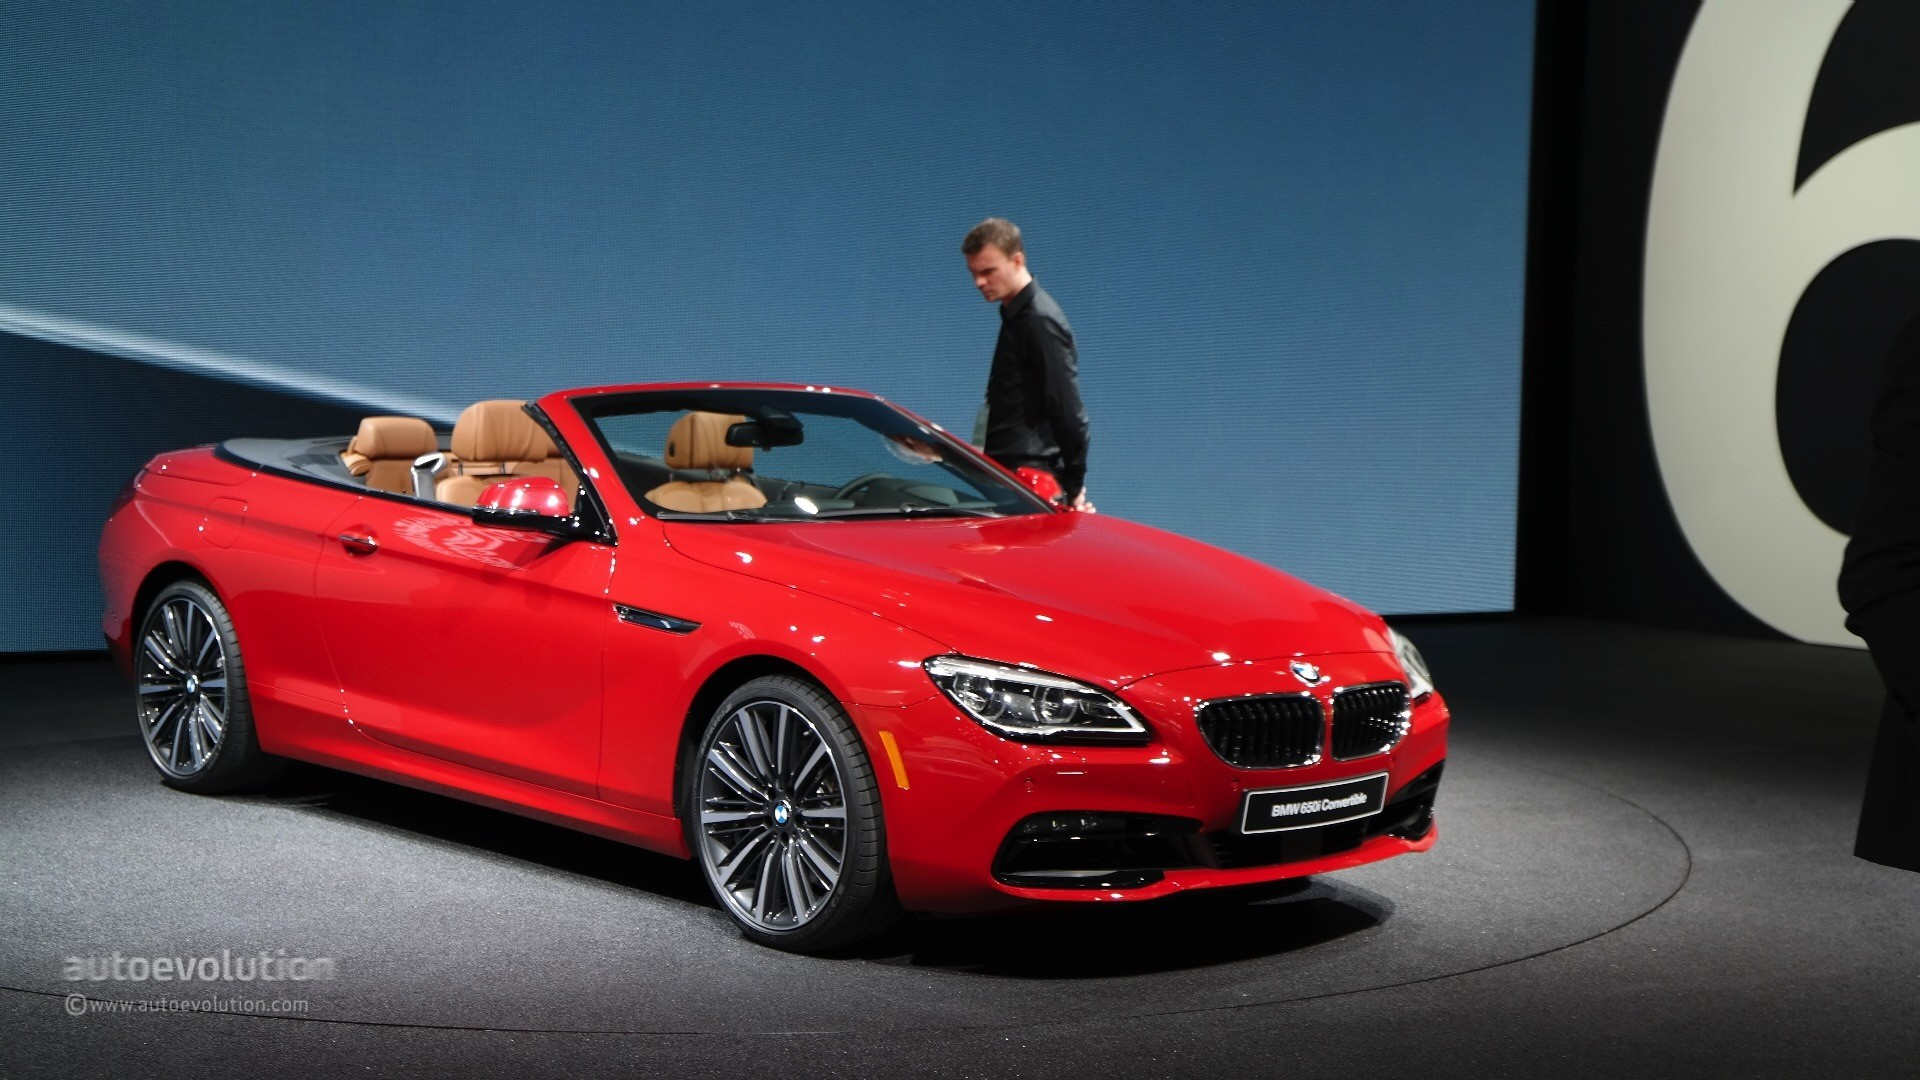 bmw m6 gran coupe facelift wows an astronaut in latest. Black Bedroom Furniture Sets. Home Design Ideas